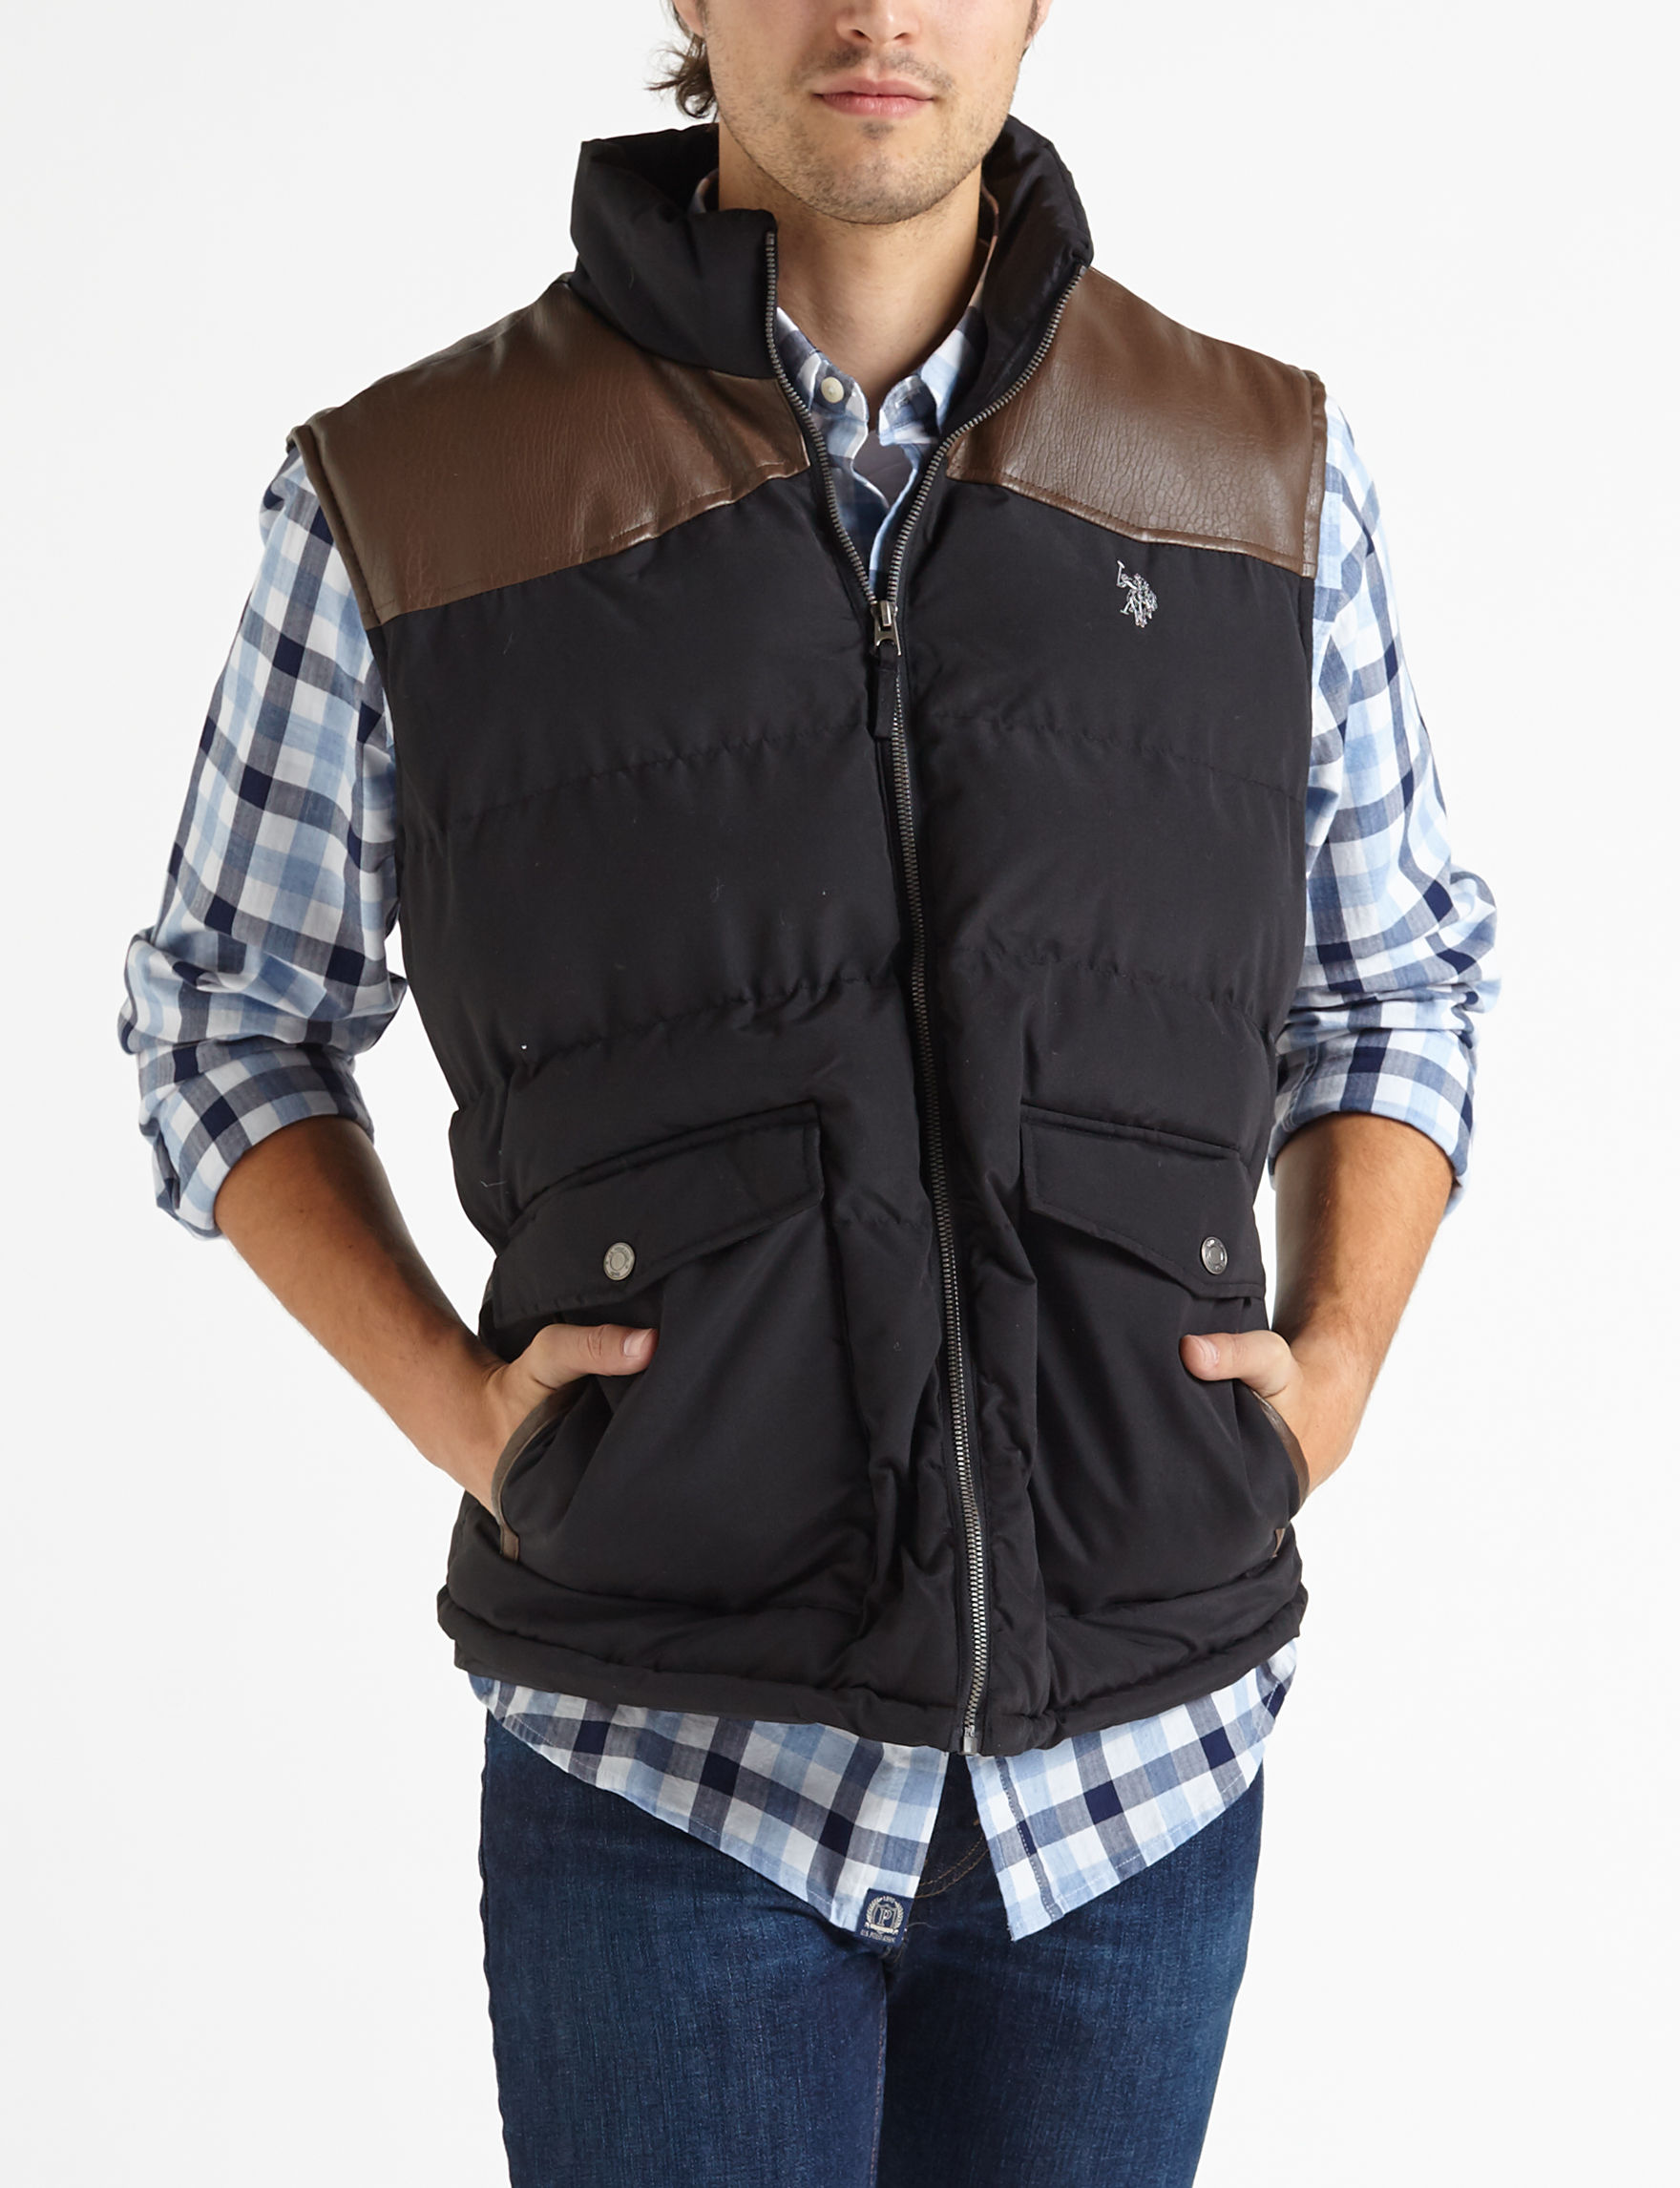 U.S. Polo Assn. Black Vests